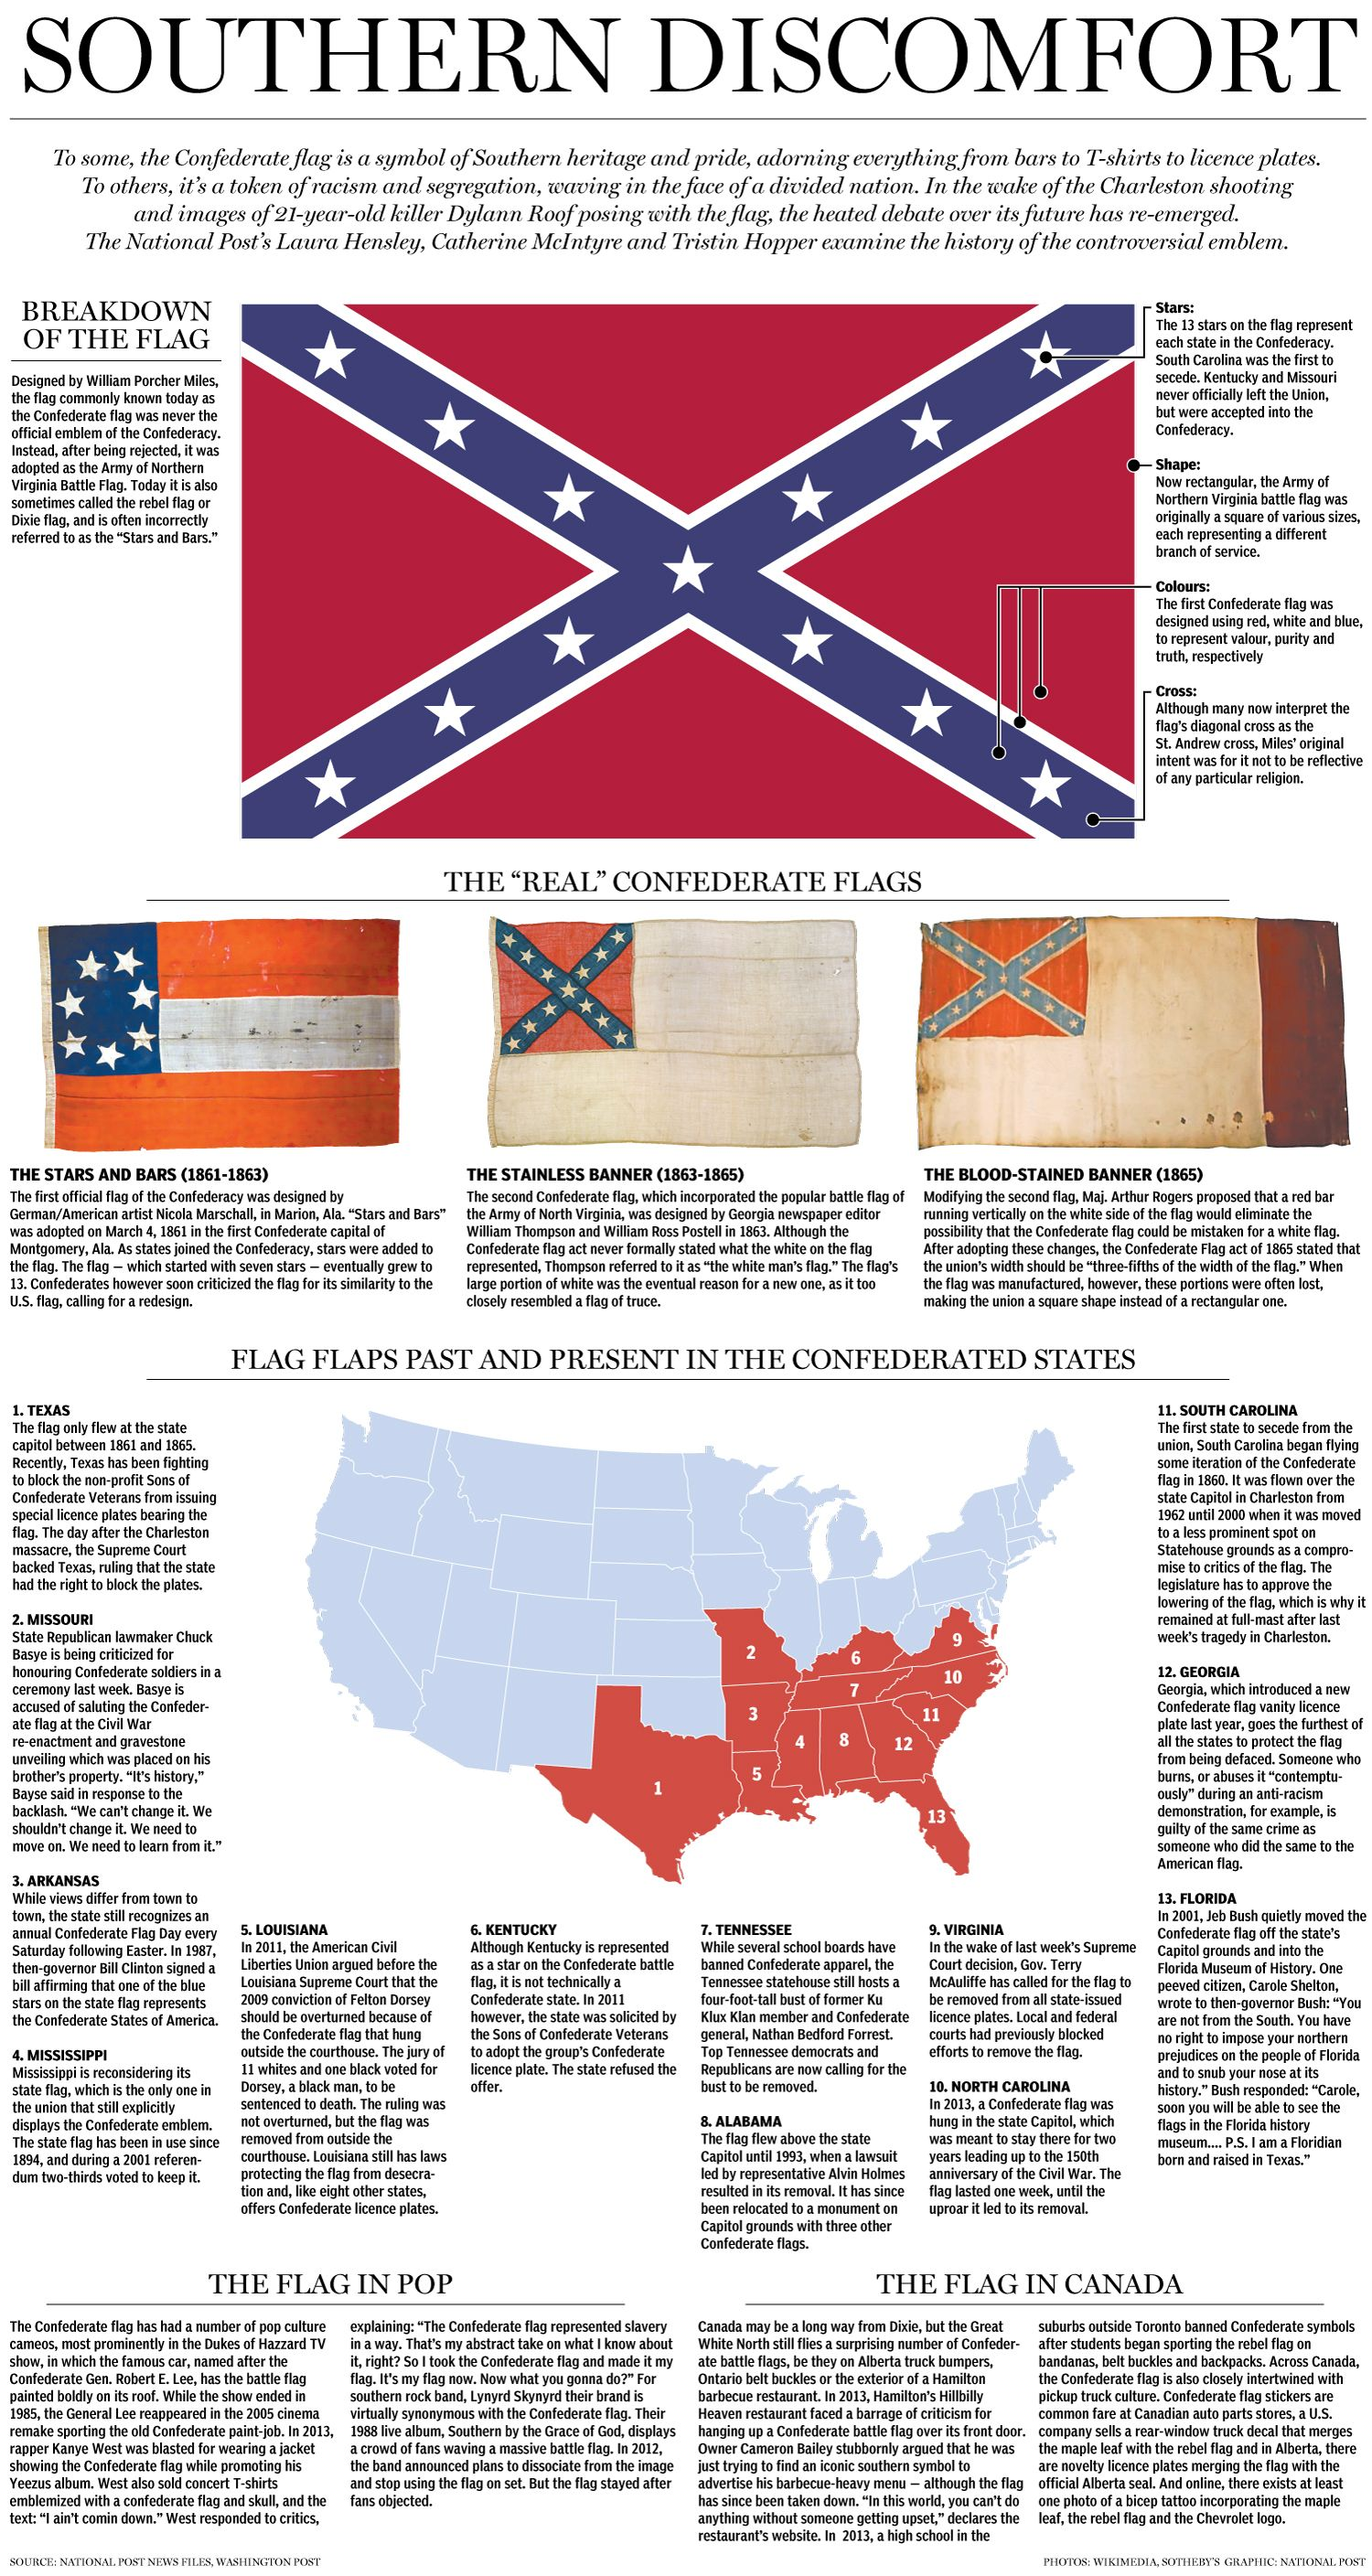 the real cause of the civil war in america American academic historians have with near unanimity cited slavery as the cause of the war the controversy over slavery was the most prominent feature of the country's politics in the years prior to the war.